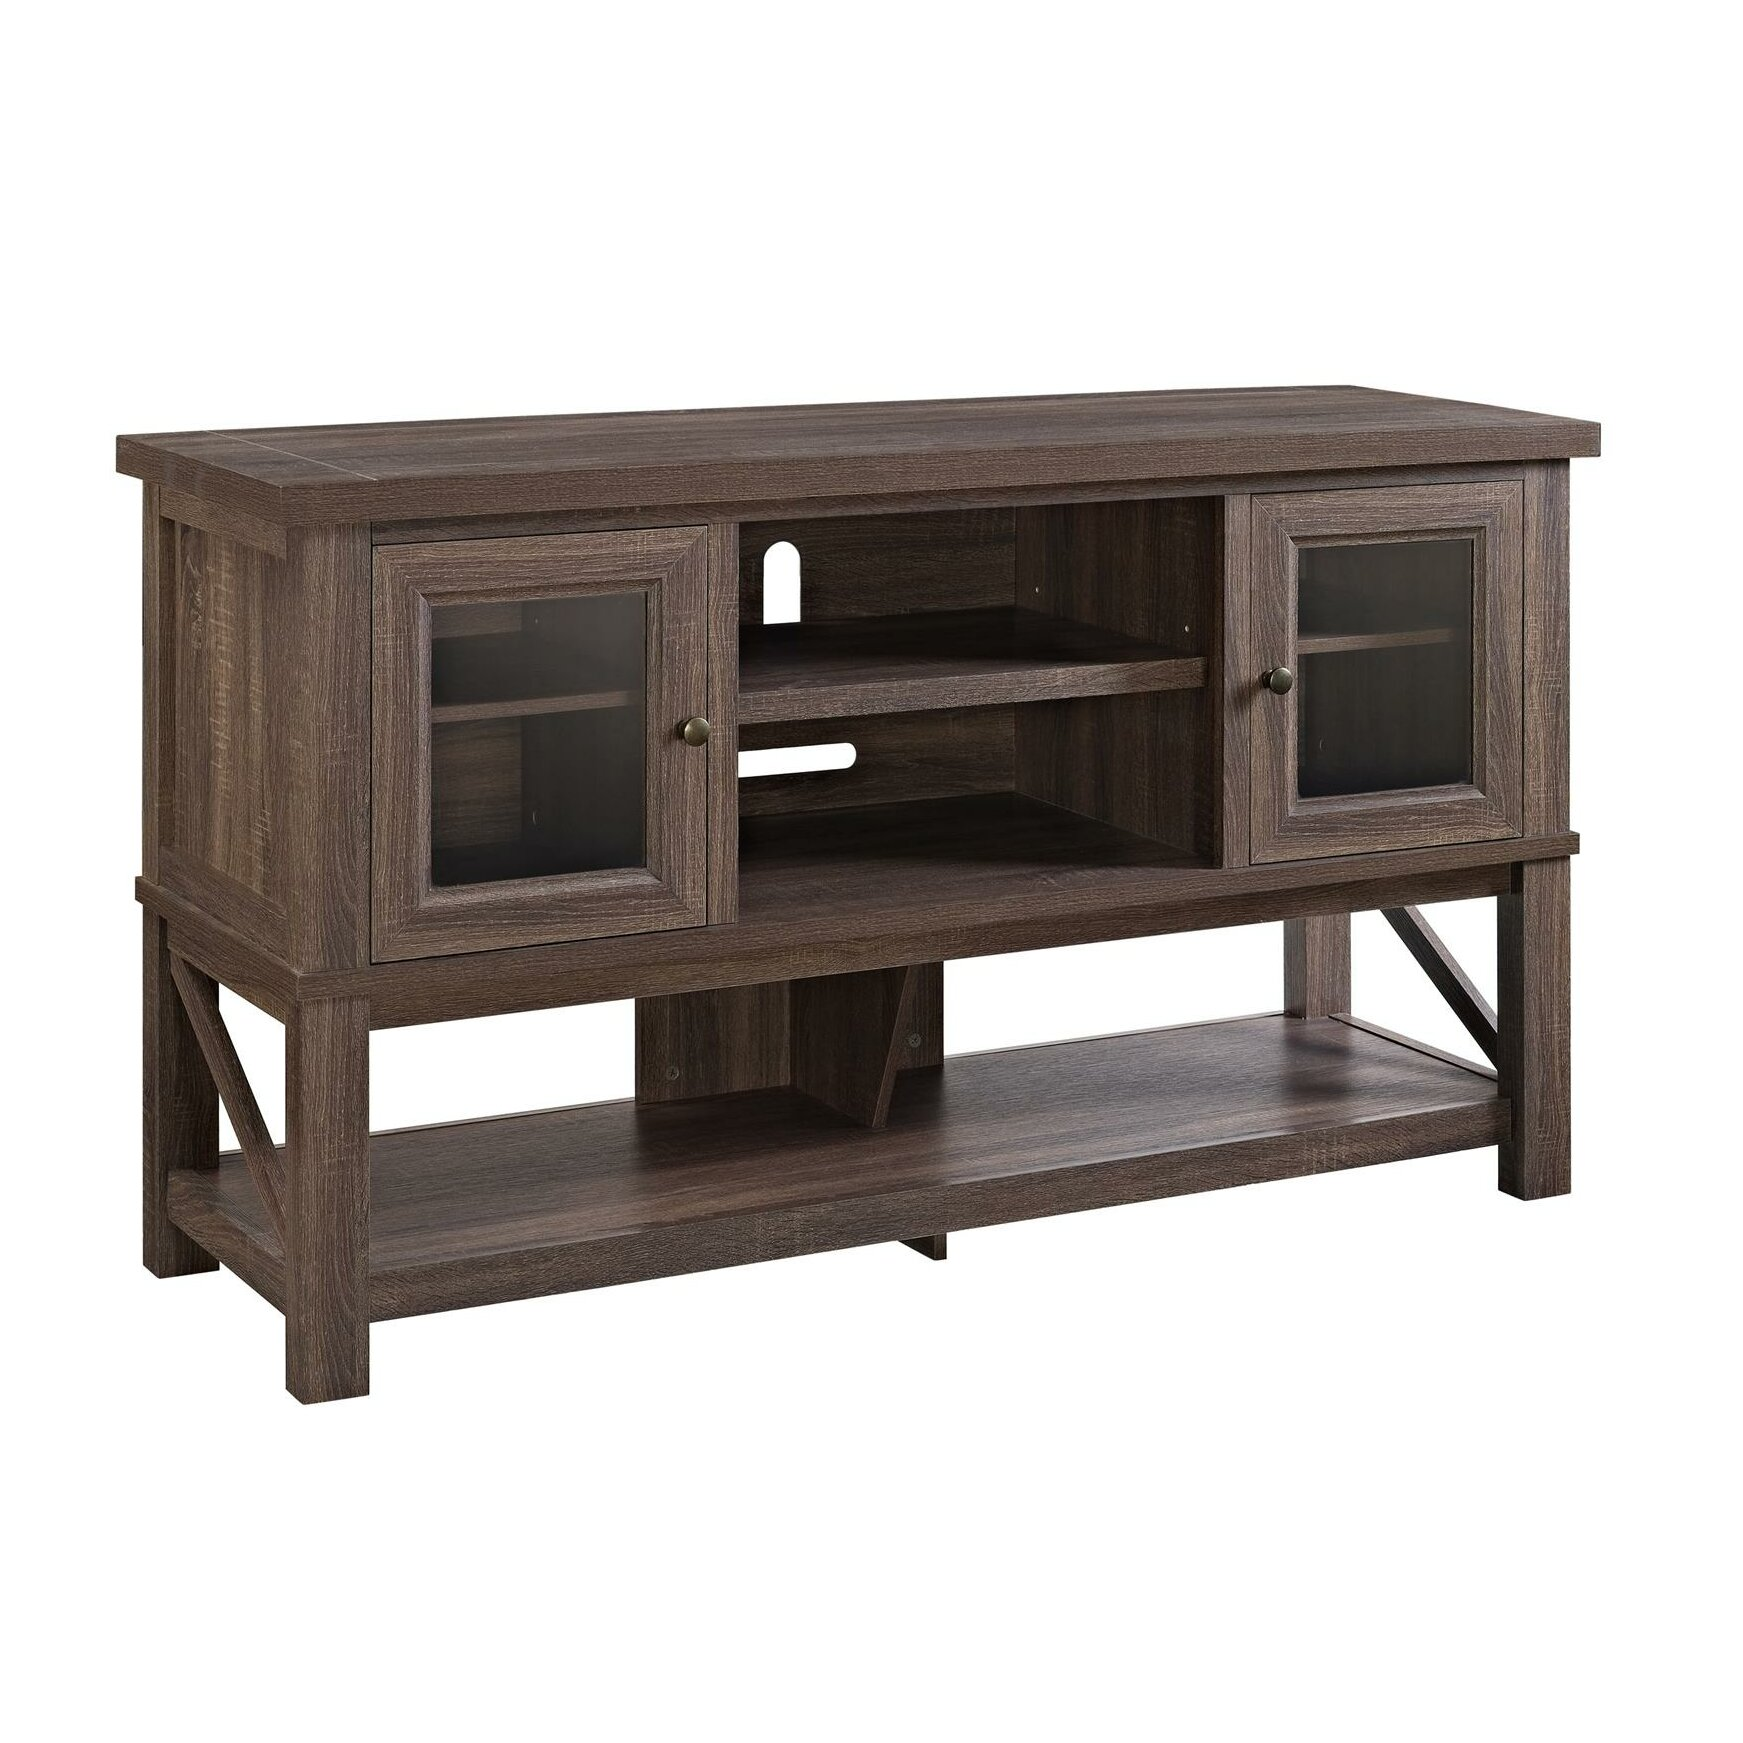 Darby Home Co Morrell Tv Stand Reviews Wayfair